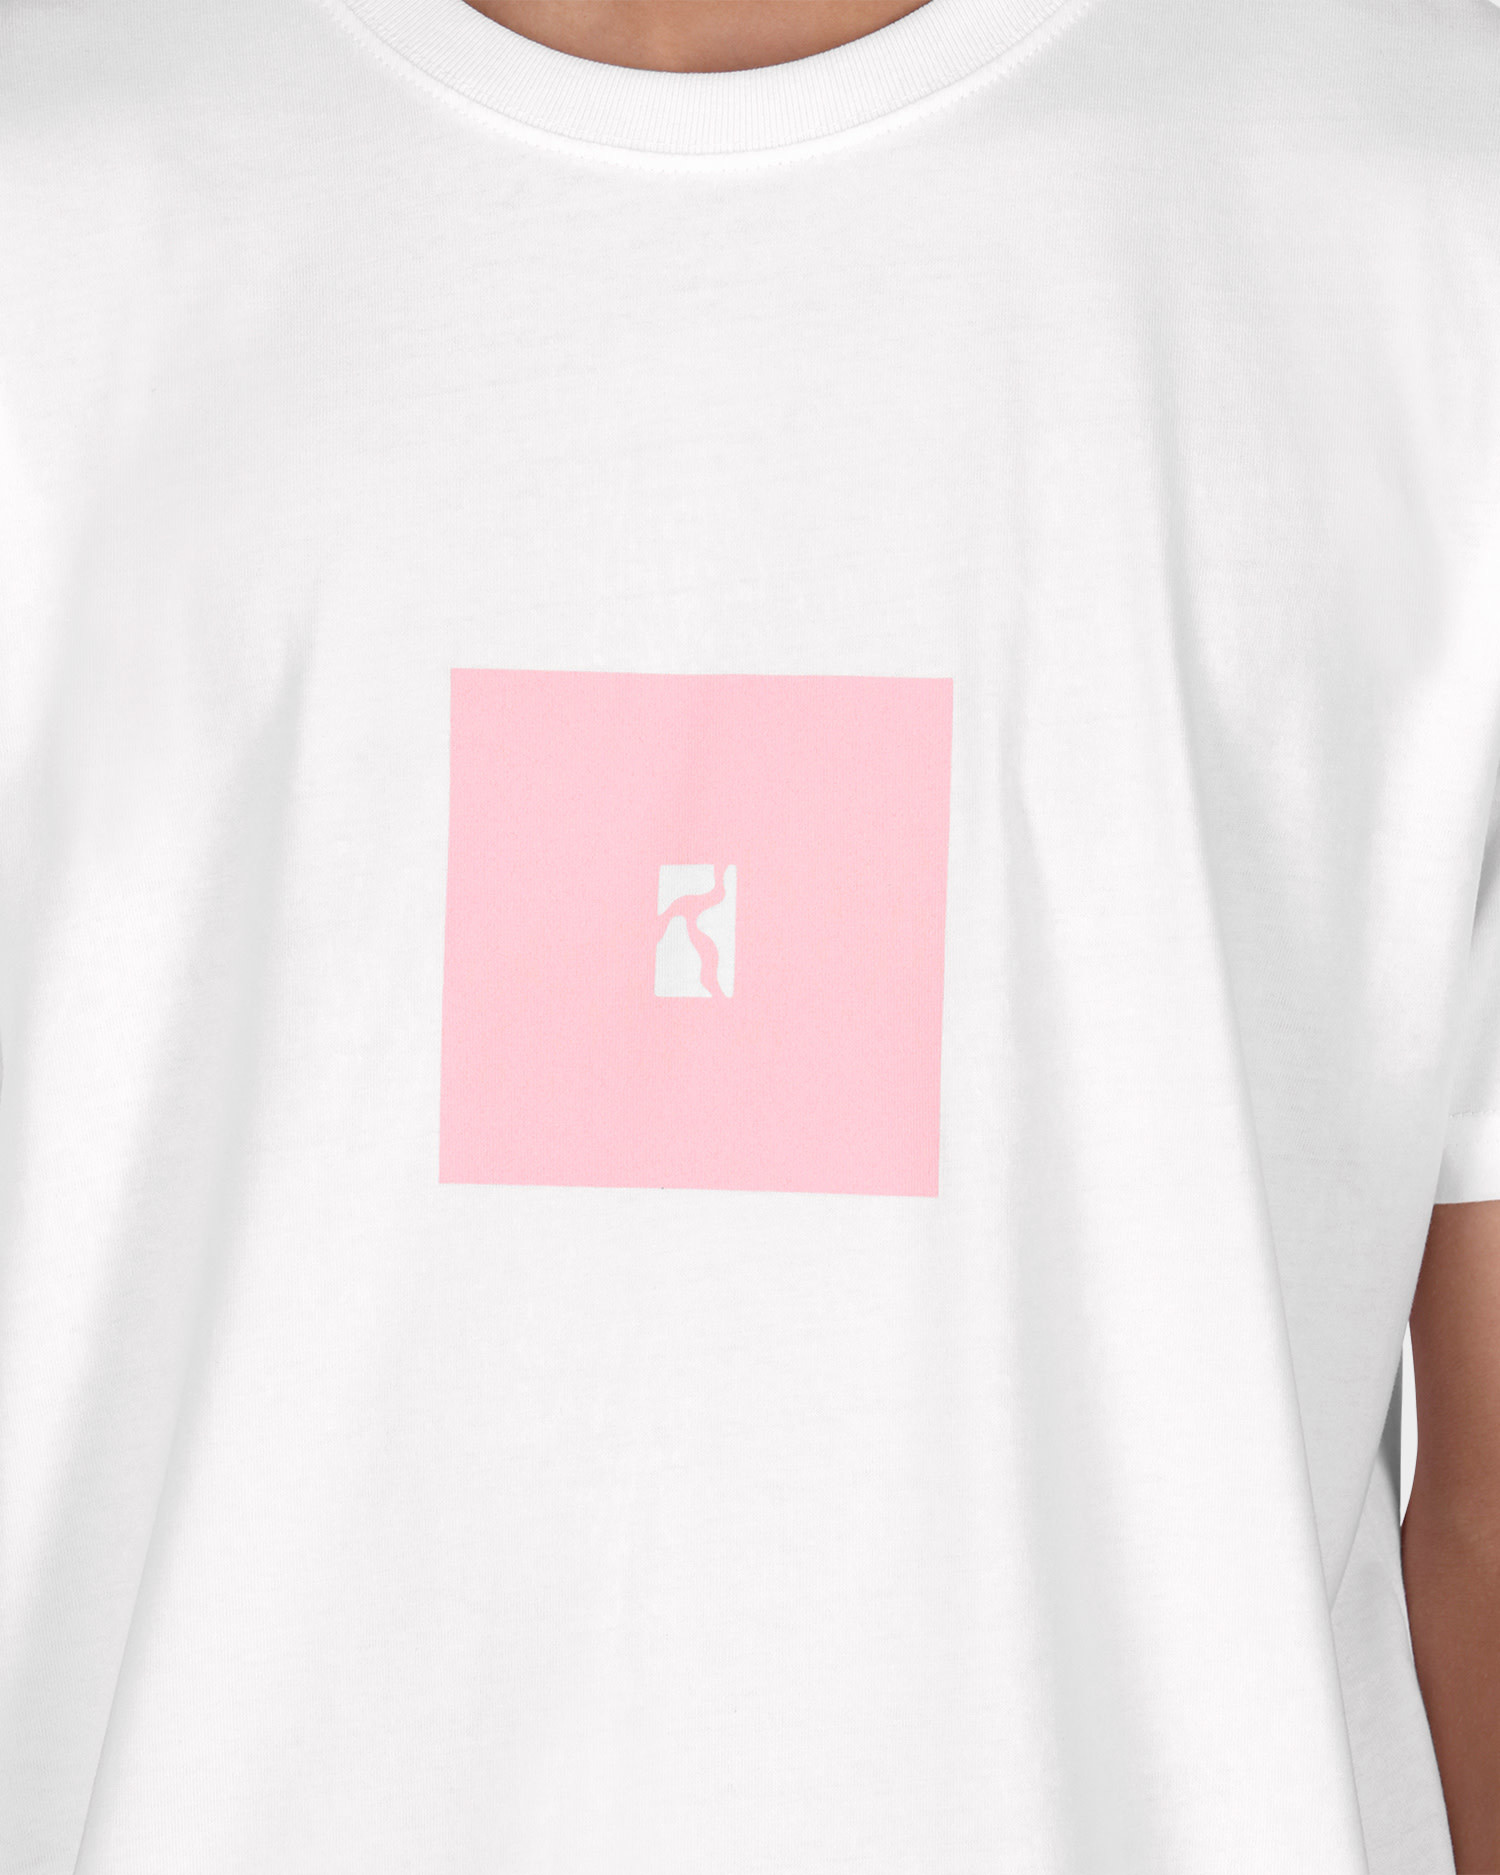 Poetic Collective Box T-shirt White/Pink